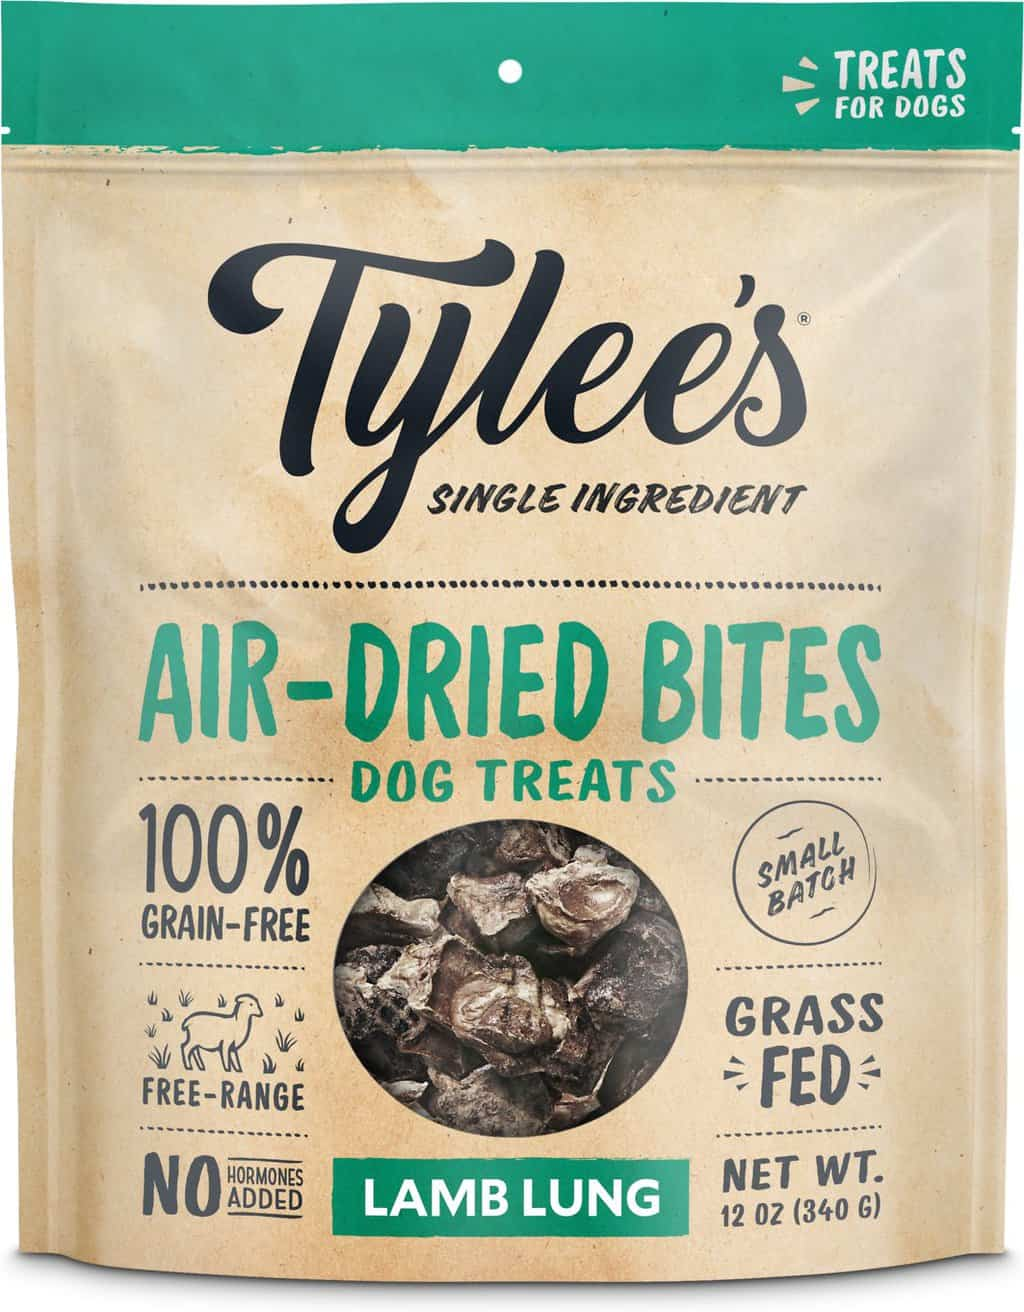 Tylee's Dog Food: 2020 Reviews, Recalls & Coupons 4